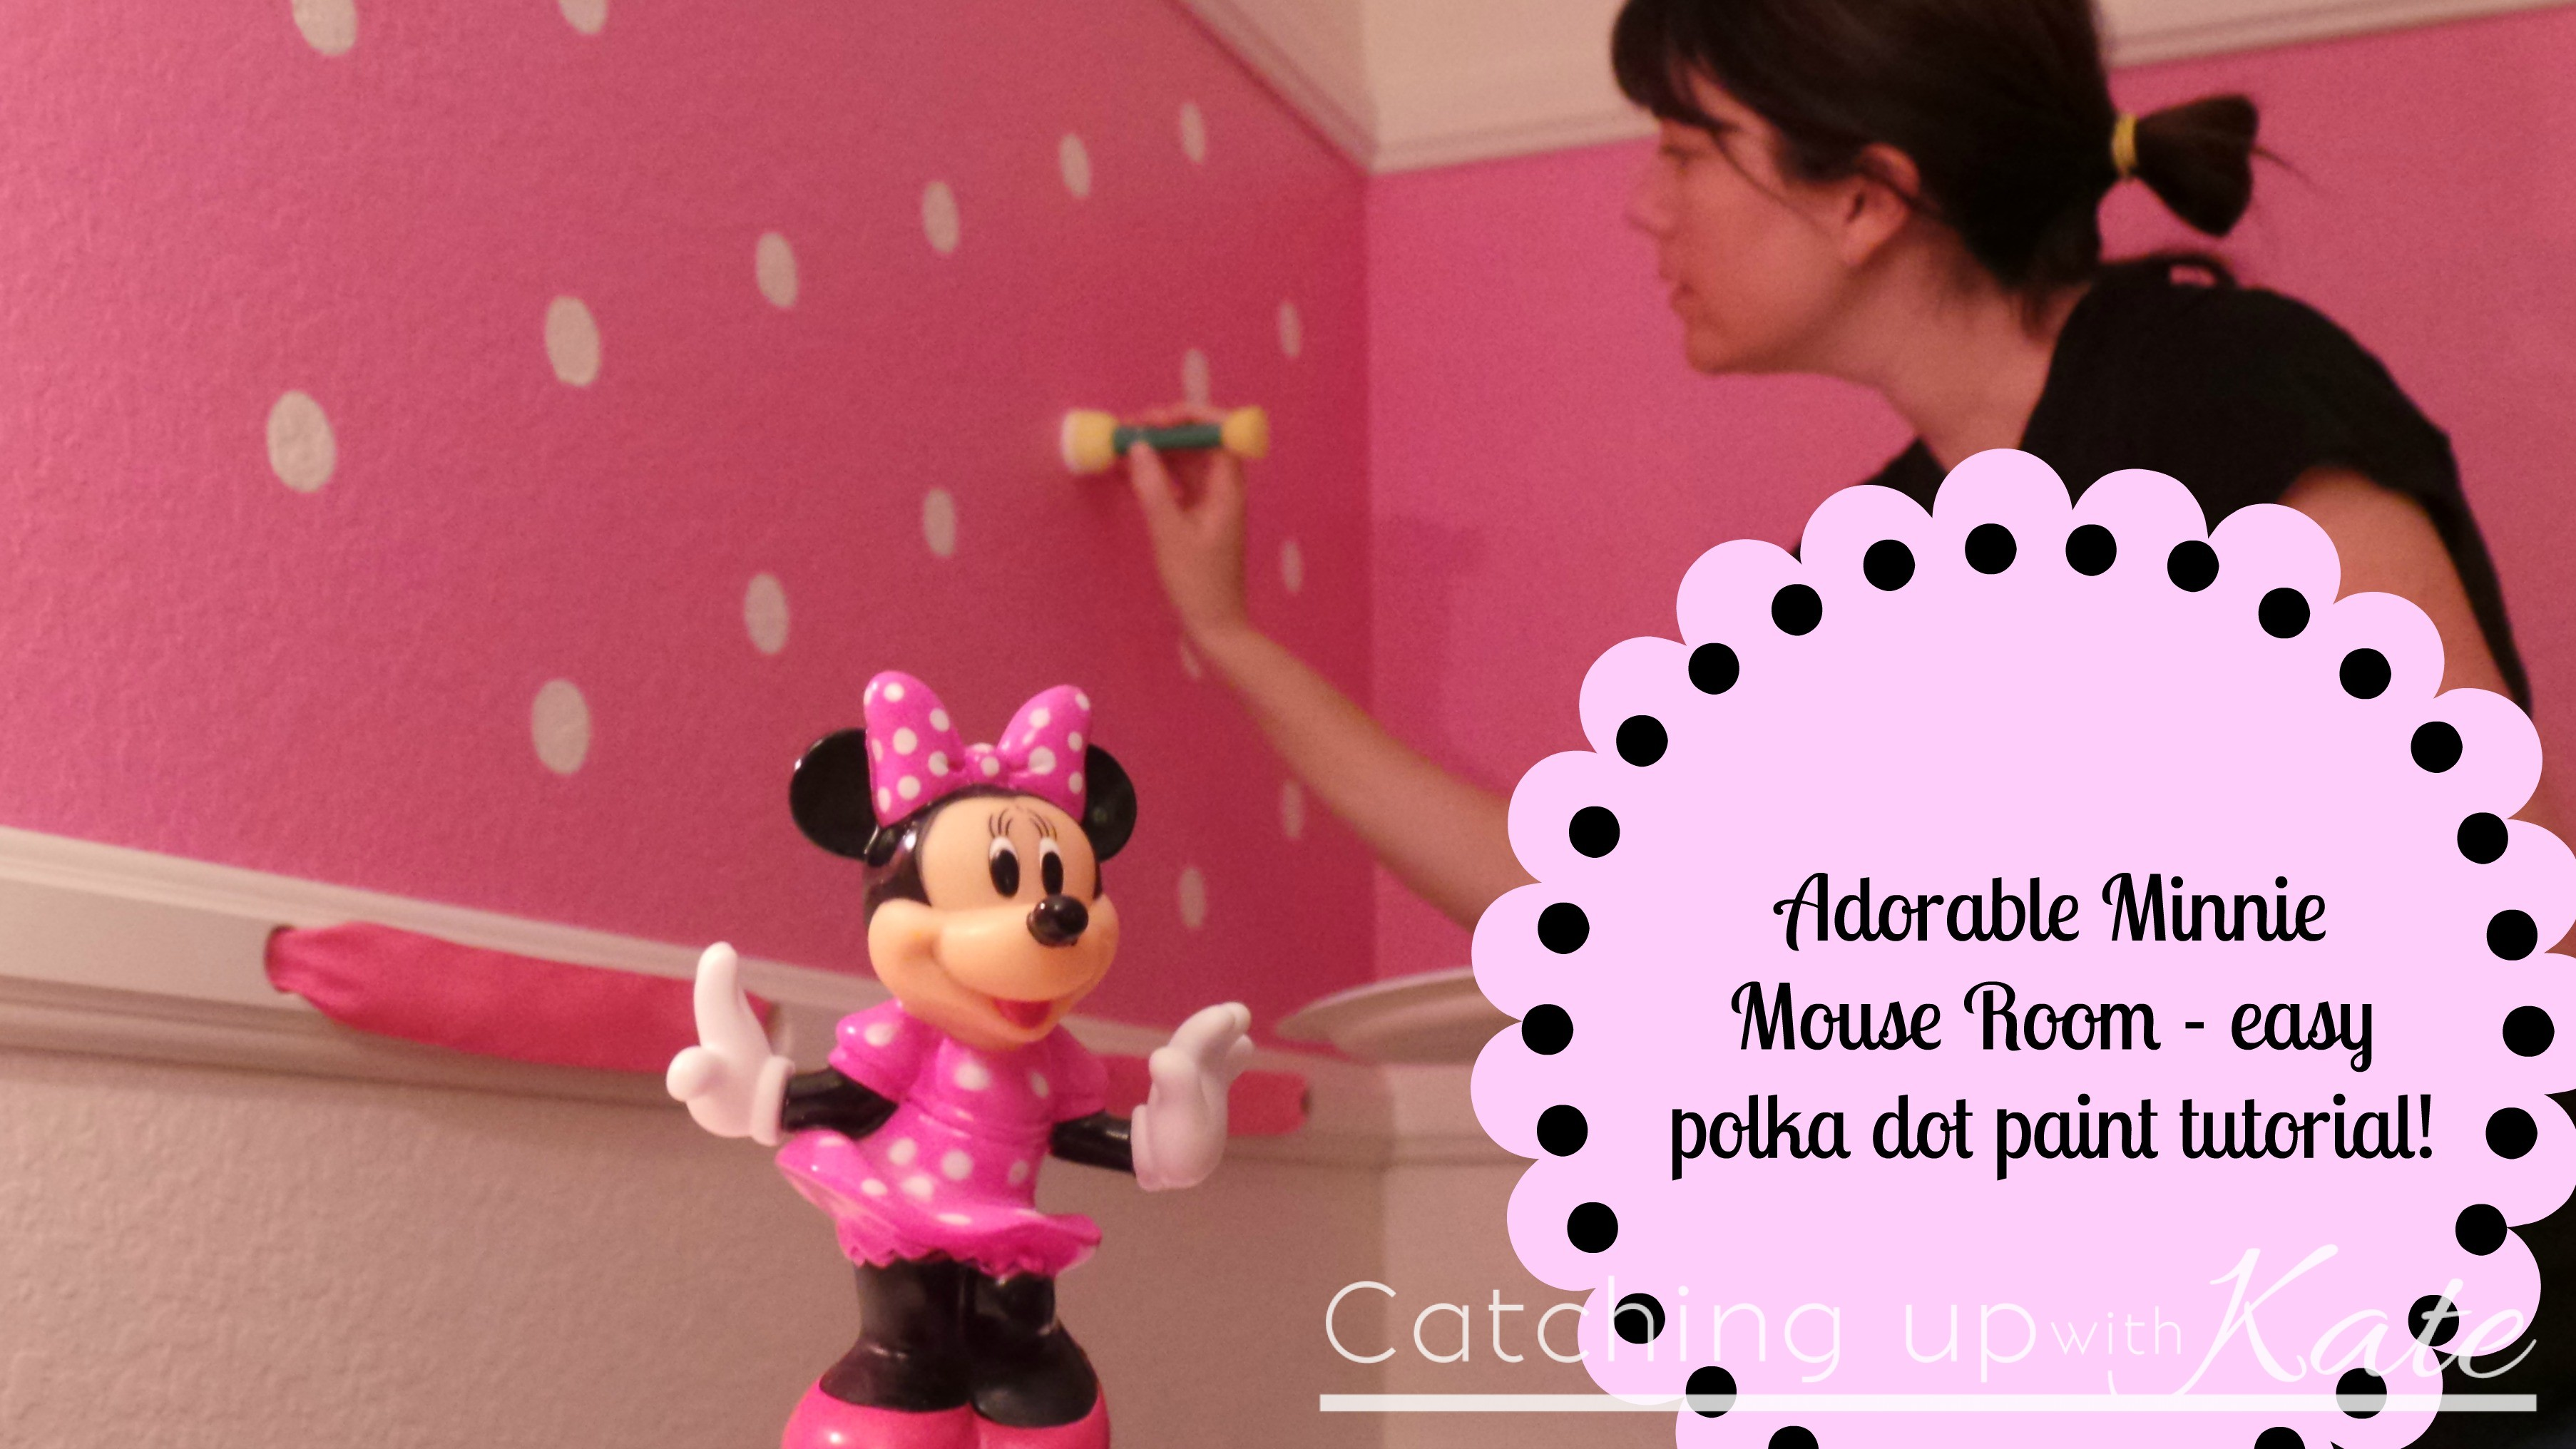 Awesome Minnie Mouse Bedroom Accessories Elegant - Bedroom Ideas ...